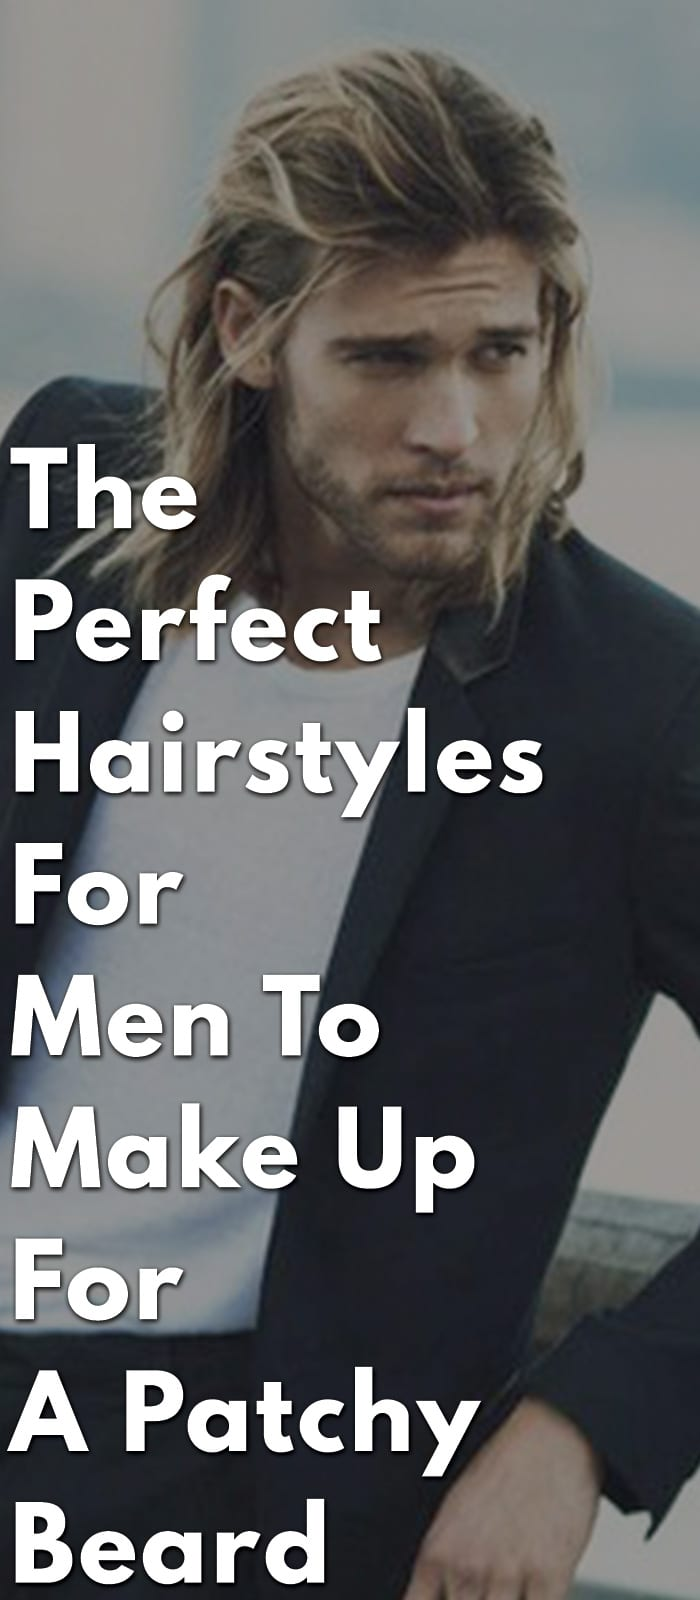 The-Perfect-Hairstyles-For-Men-To-Make-Up-For-A-Patchy-Beard.